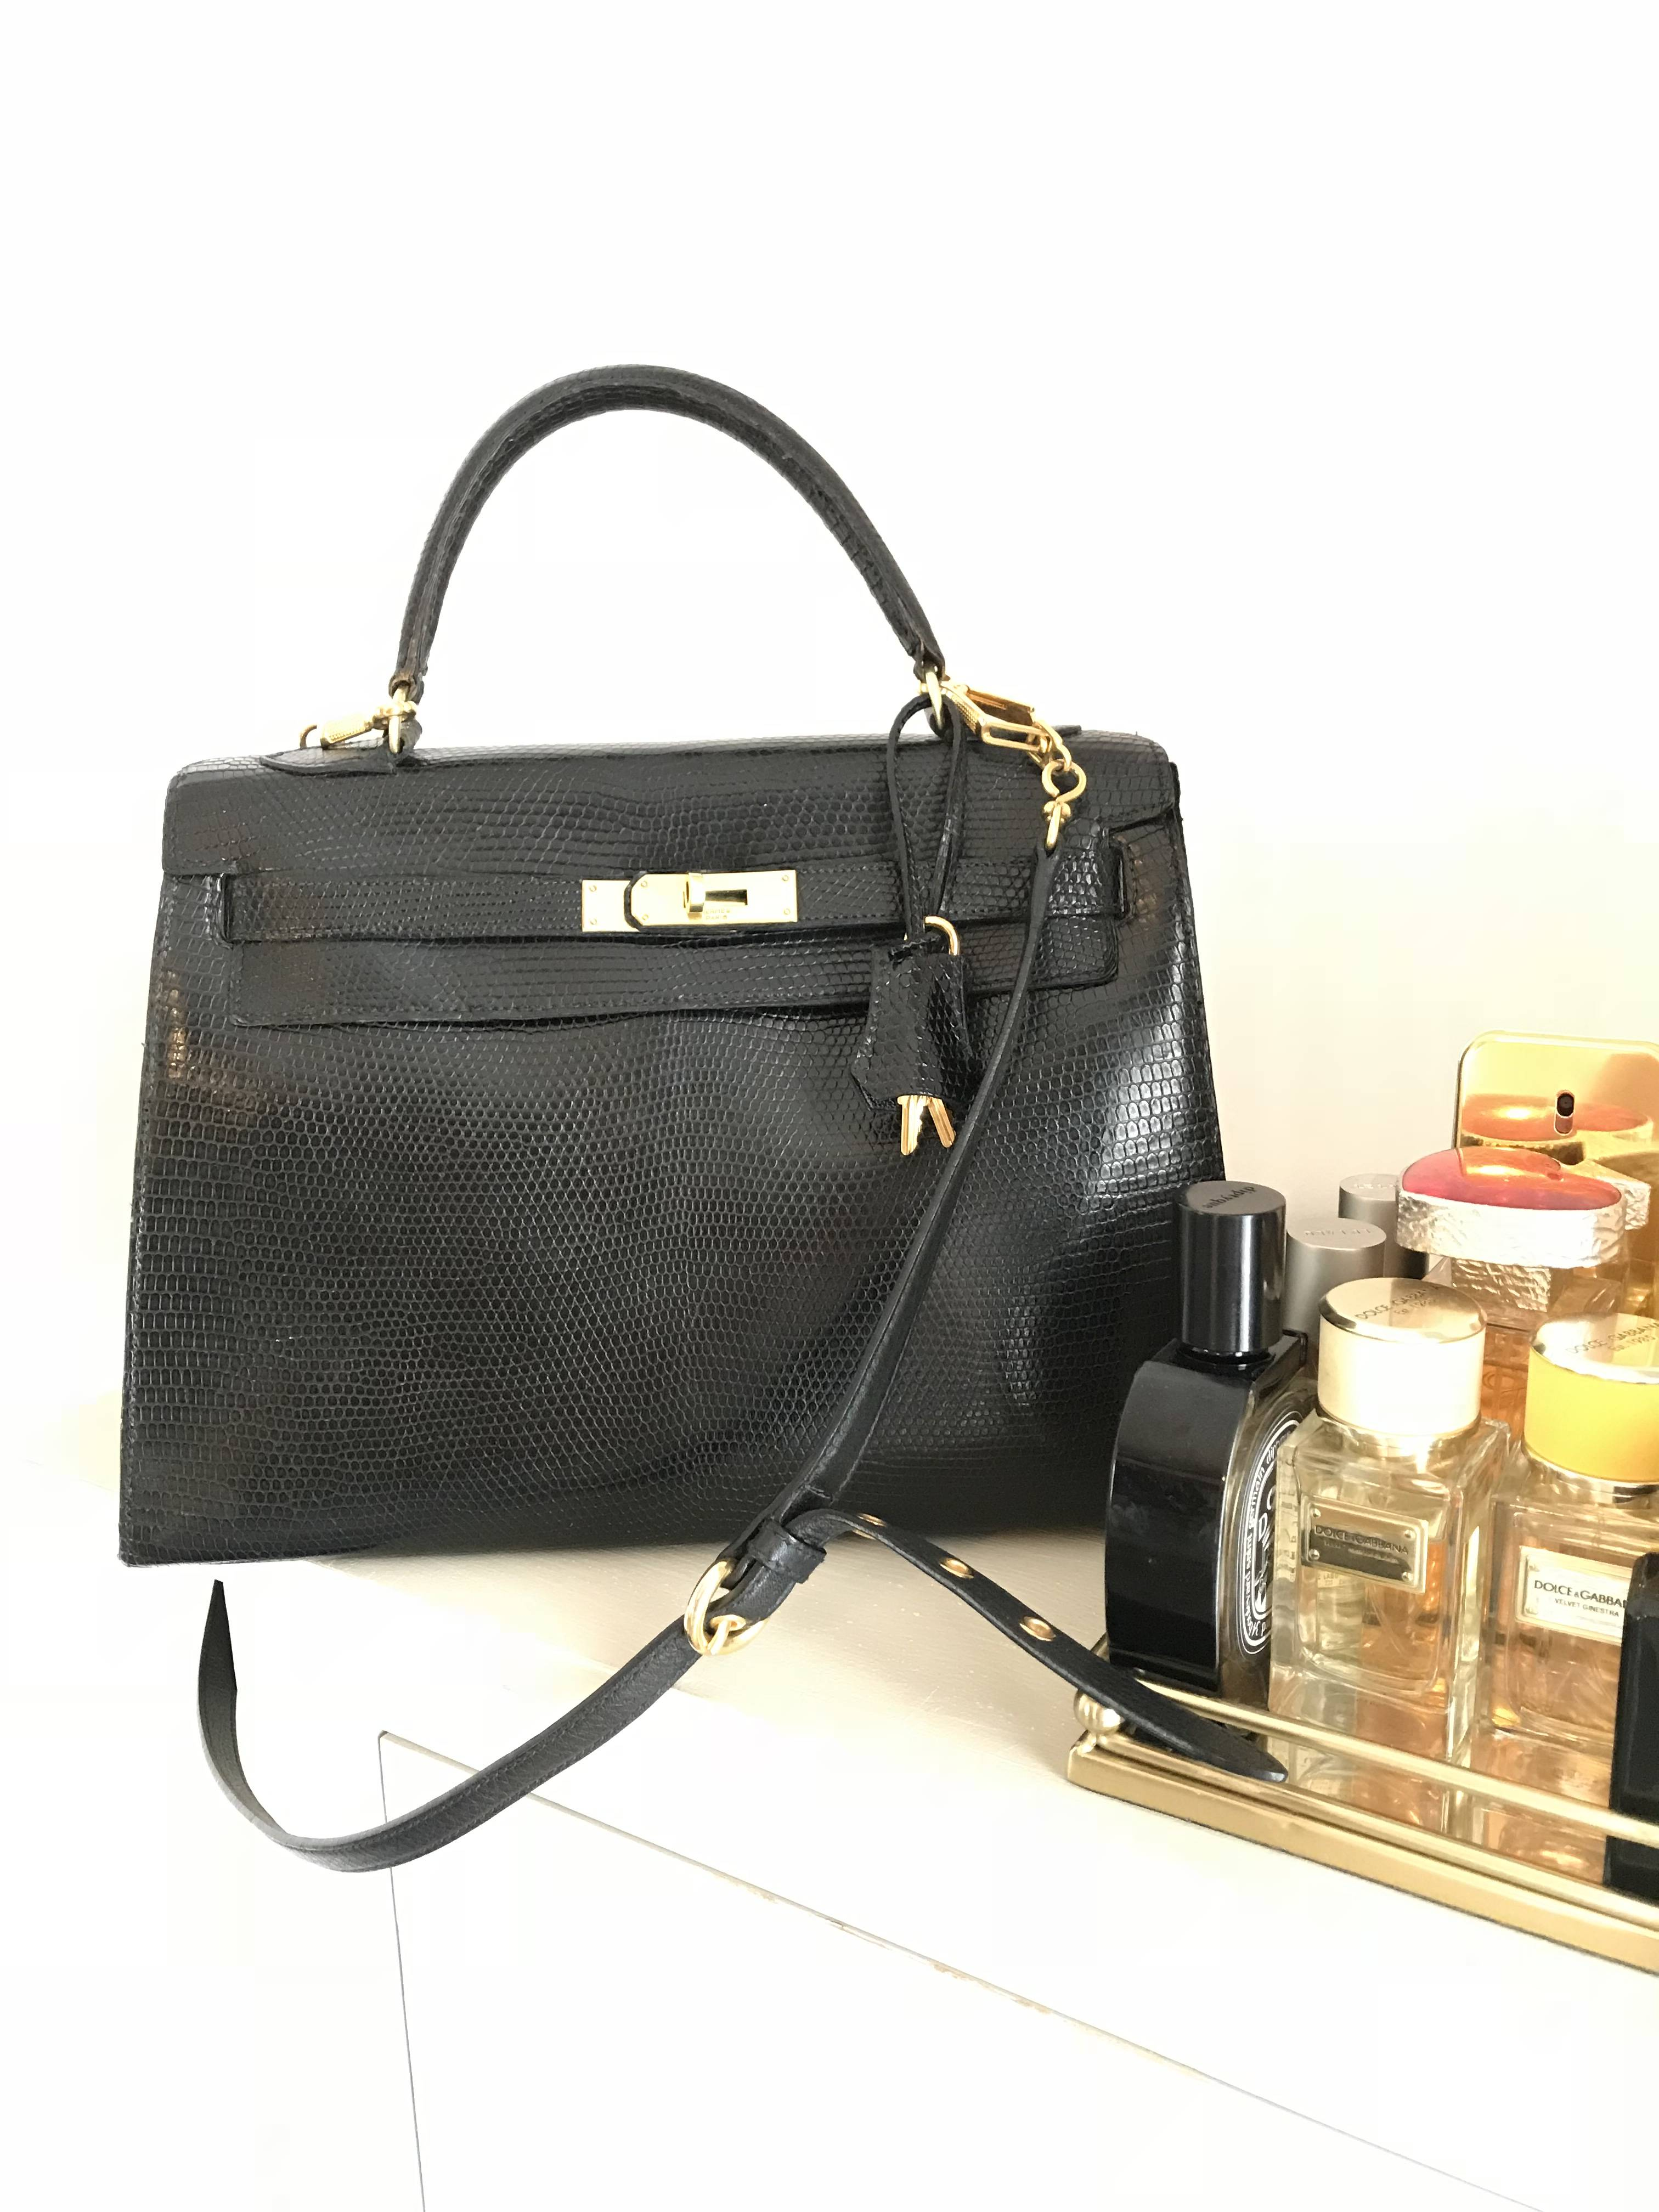 ba79ac5b8663 The small, bi-colored matte Chanel python Wallet on Chain is my evening  holy grail. This bag summarizes my style very well, and because of its size  and ...